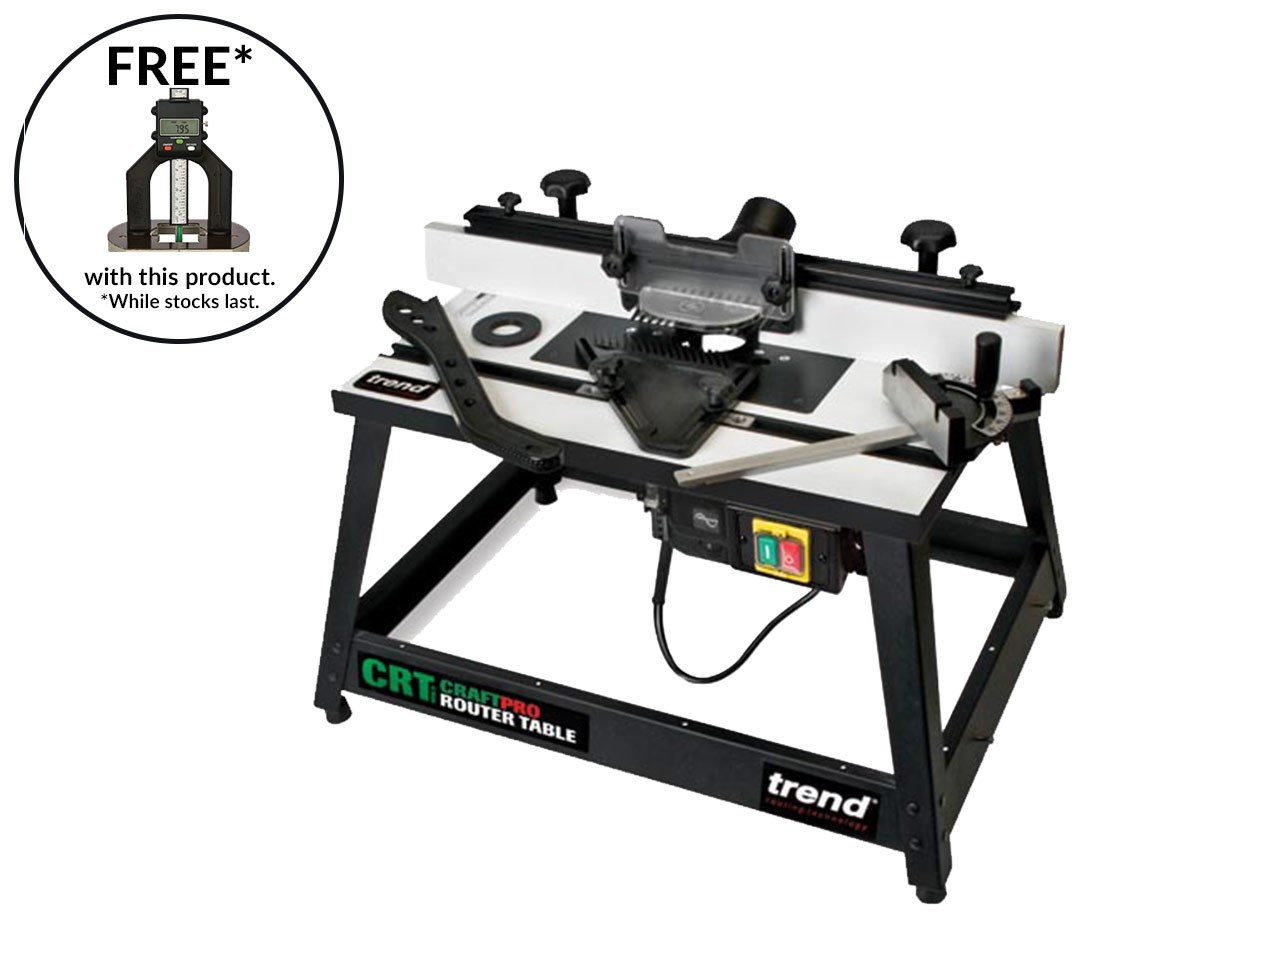 Trend crtmk3l craftpro router table mk3 115v greentooth Choice Image